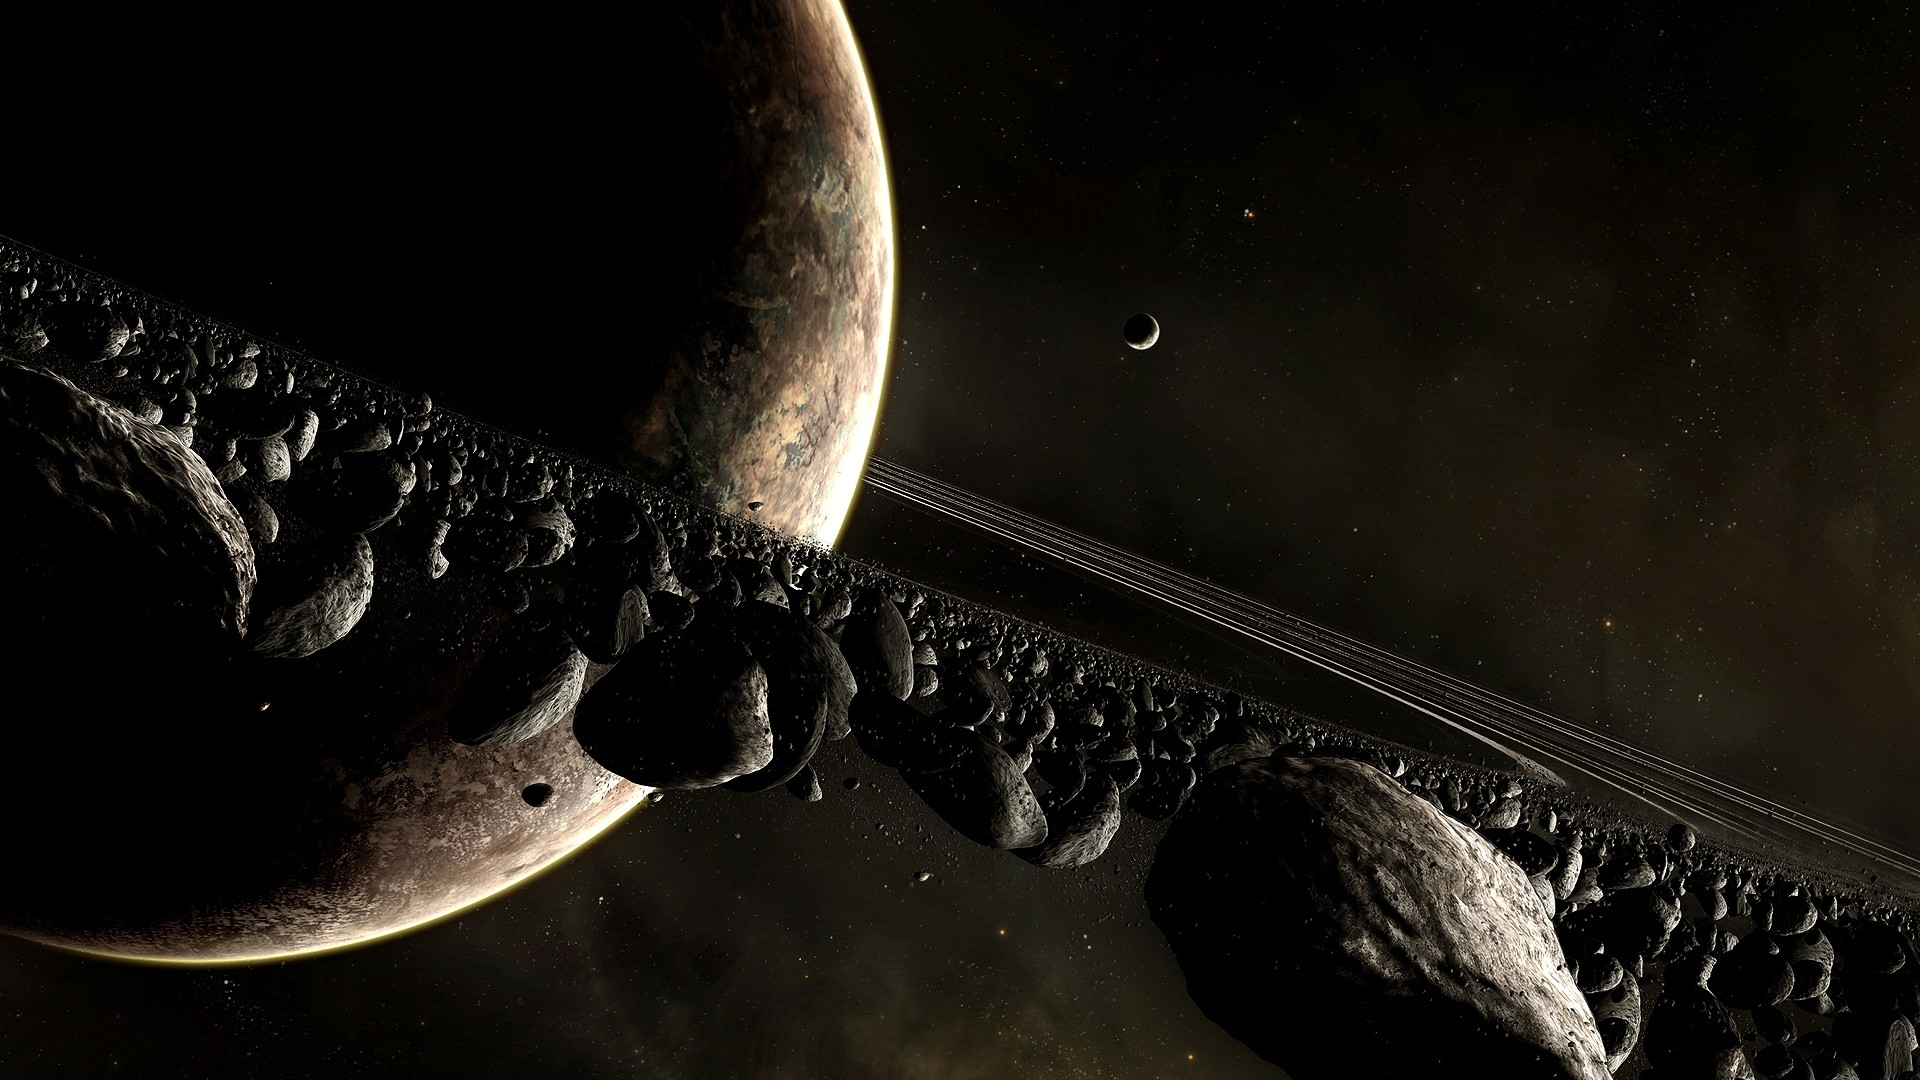 1920x1080  Wallpaper universe planet, planet, disaster, space